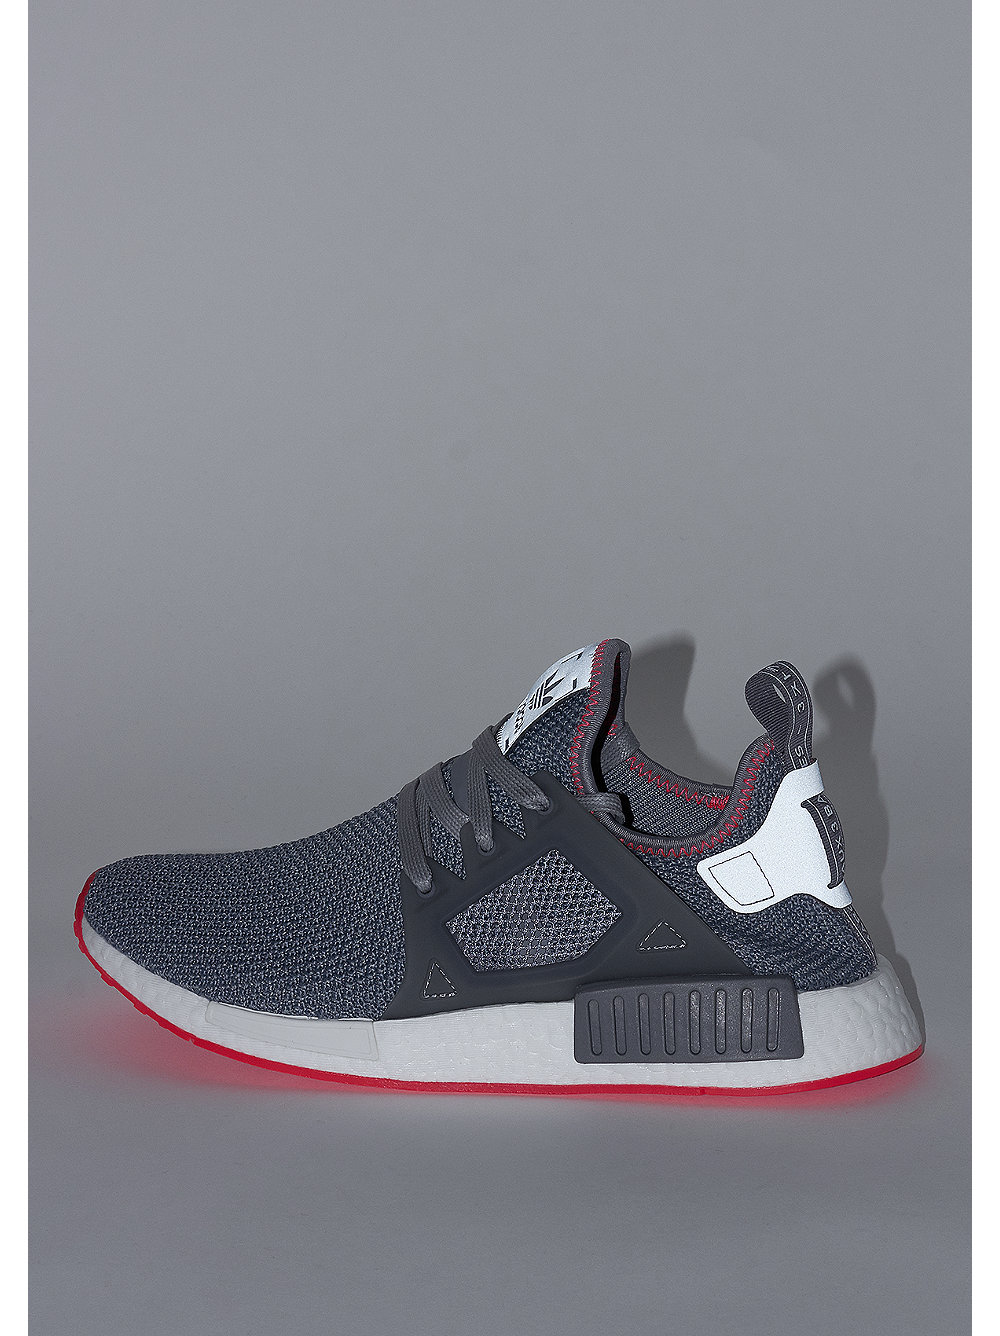 adidas Originals NMD Xr1 Primeknit Boost Shoes Trainers S32215 8